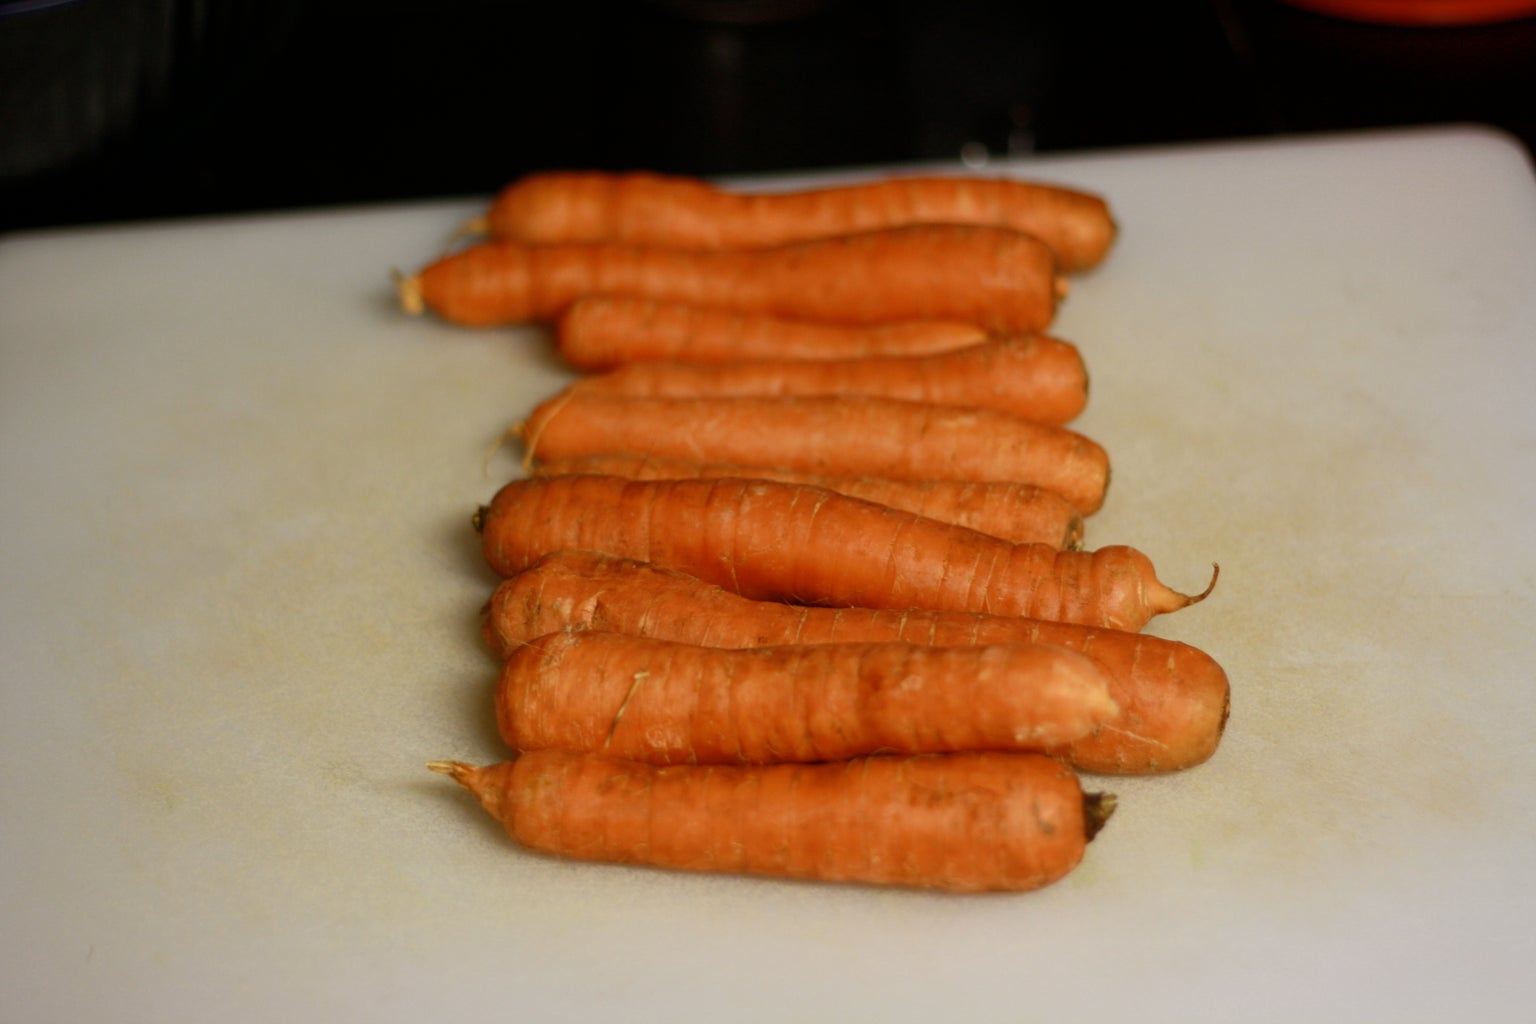 Wash, Peel, and Chop the Carrots